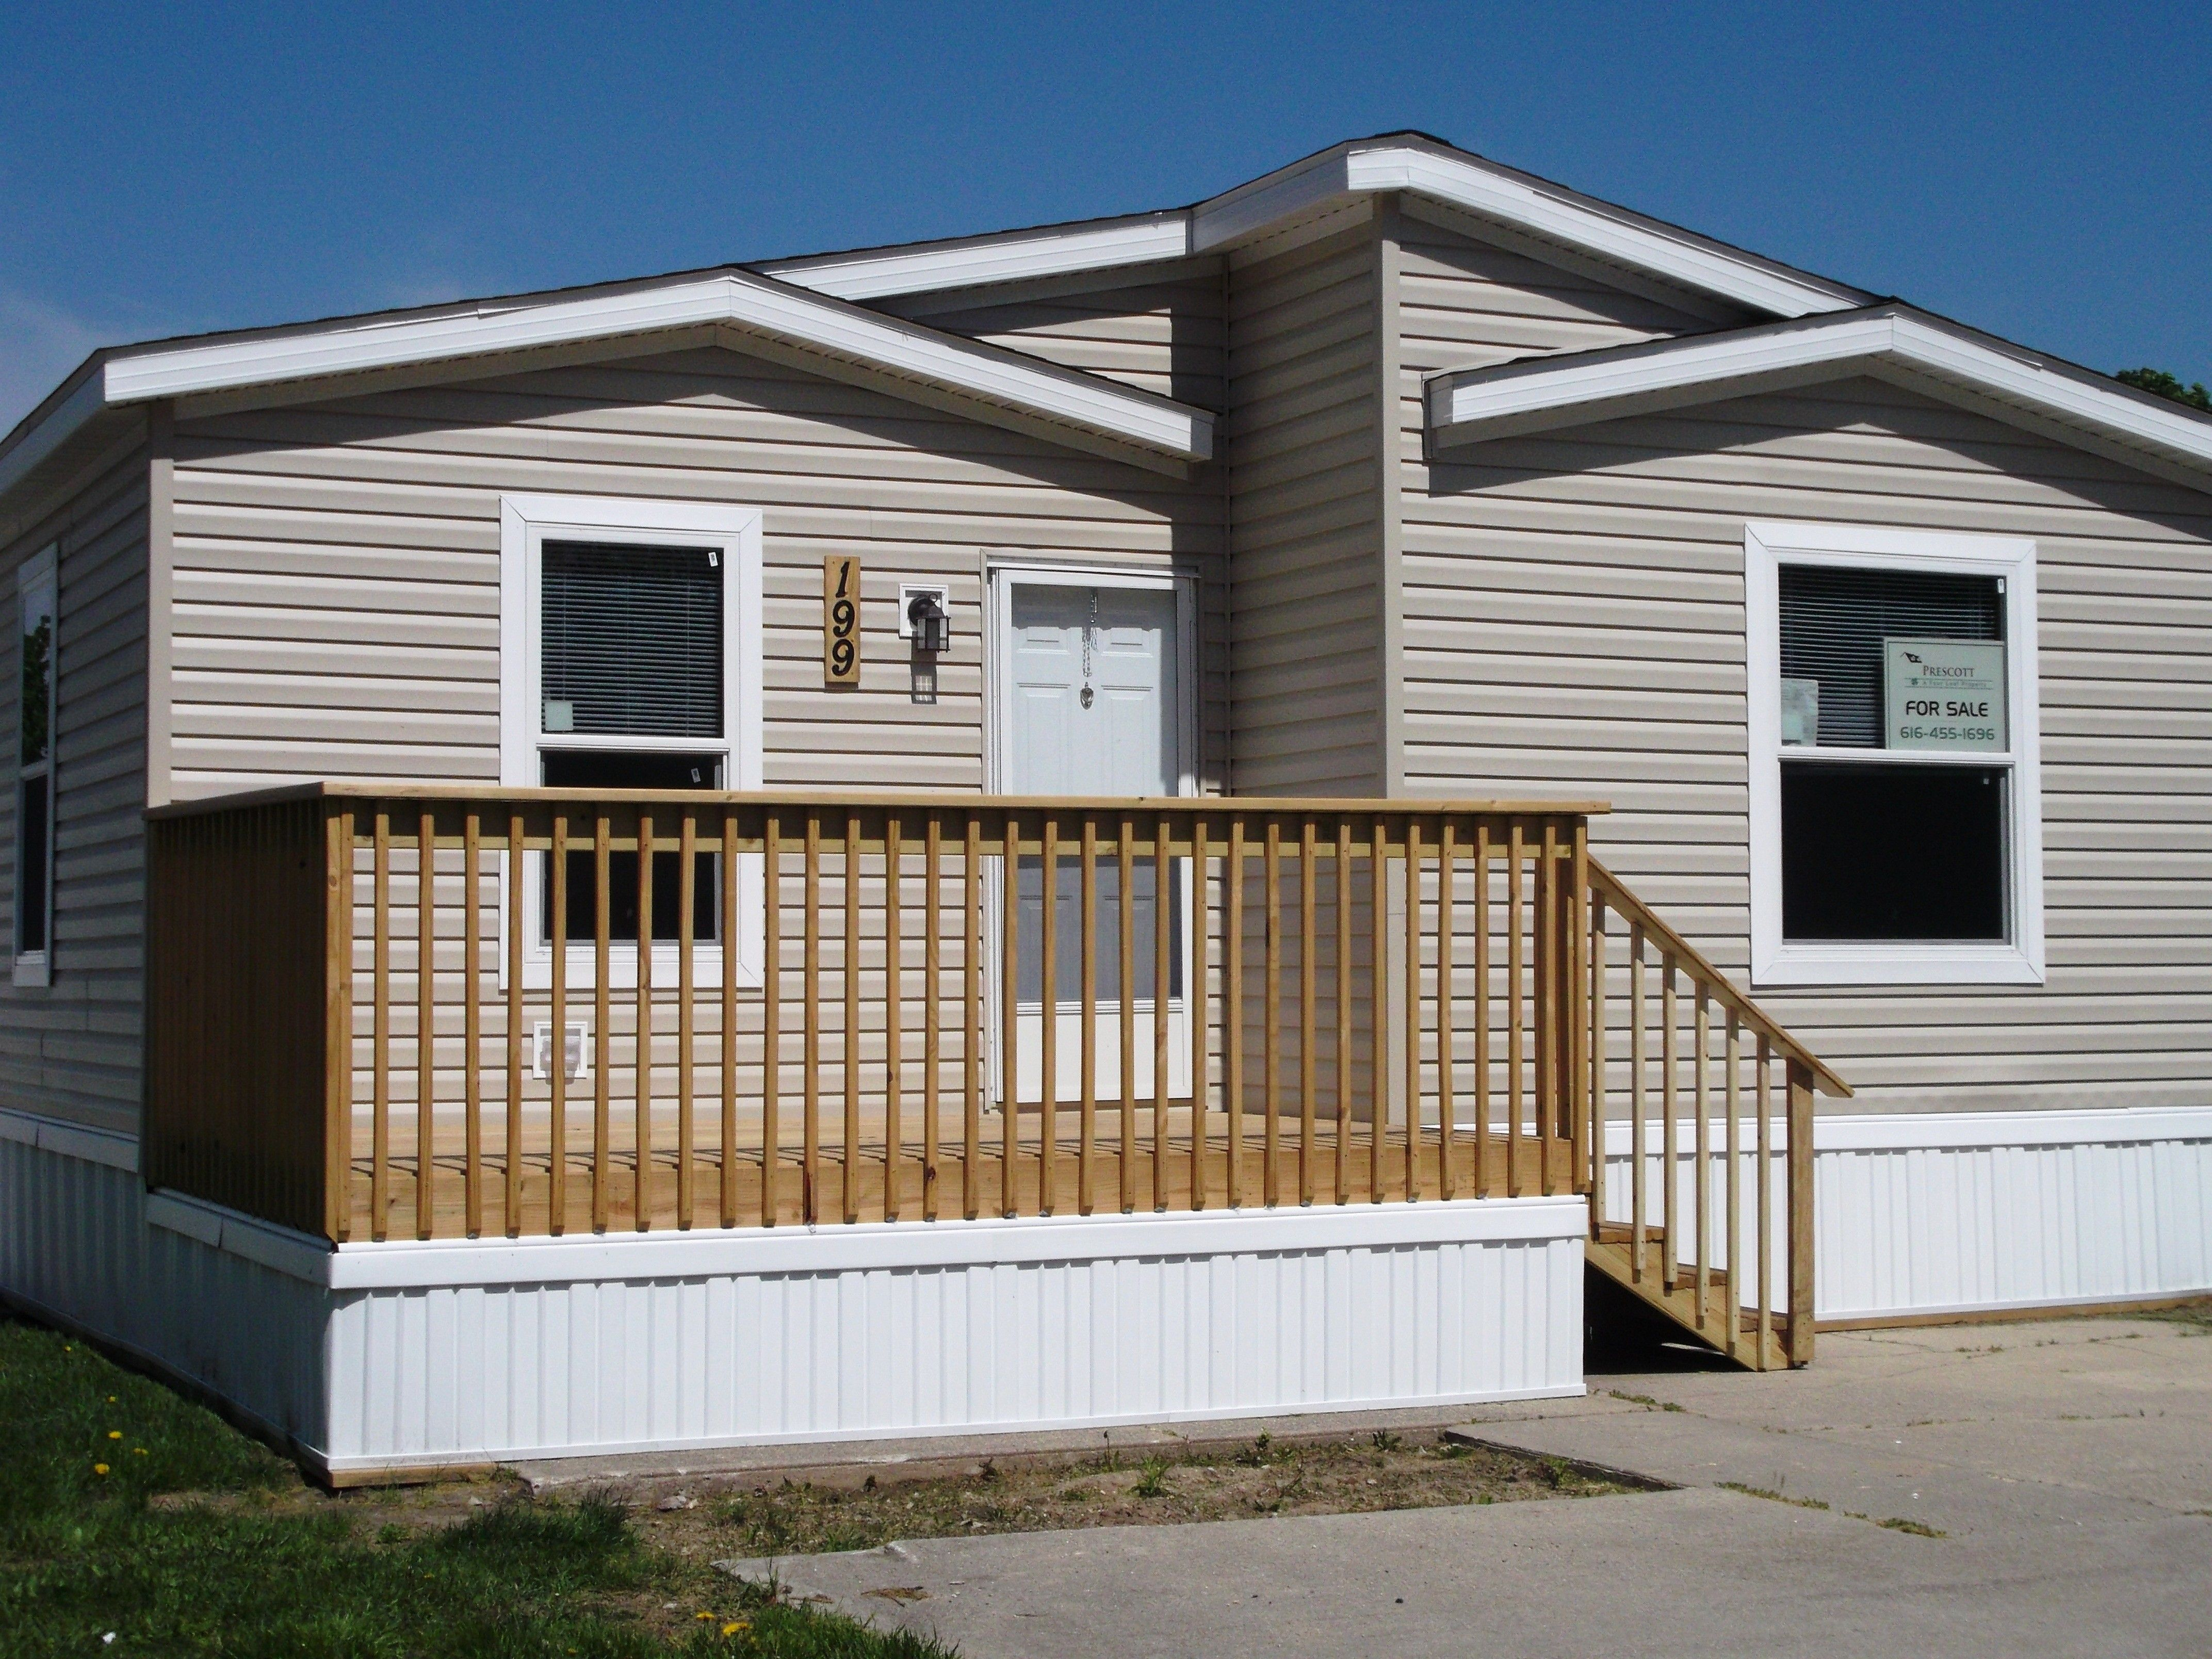 harmonious 17 Perfect Images 6 Bedroom Mobile Homes For